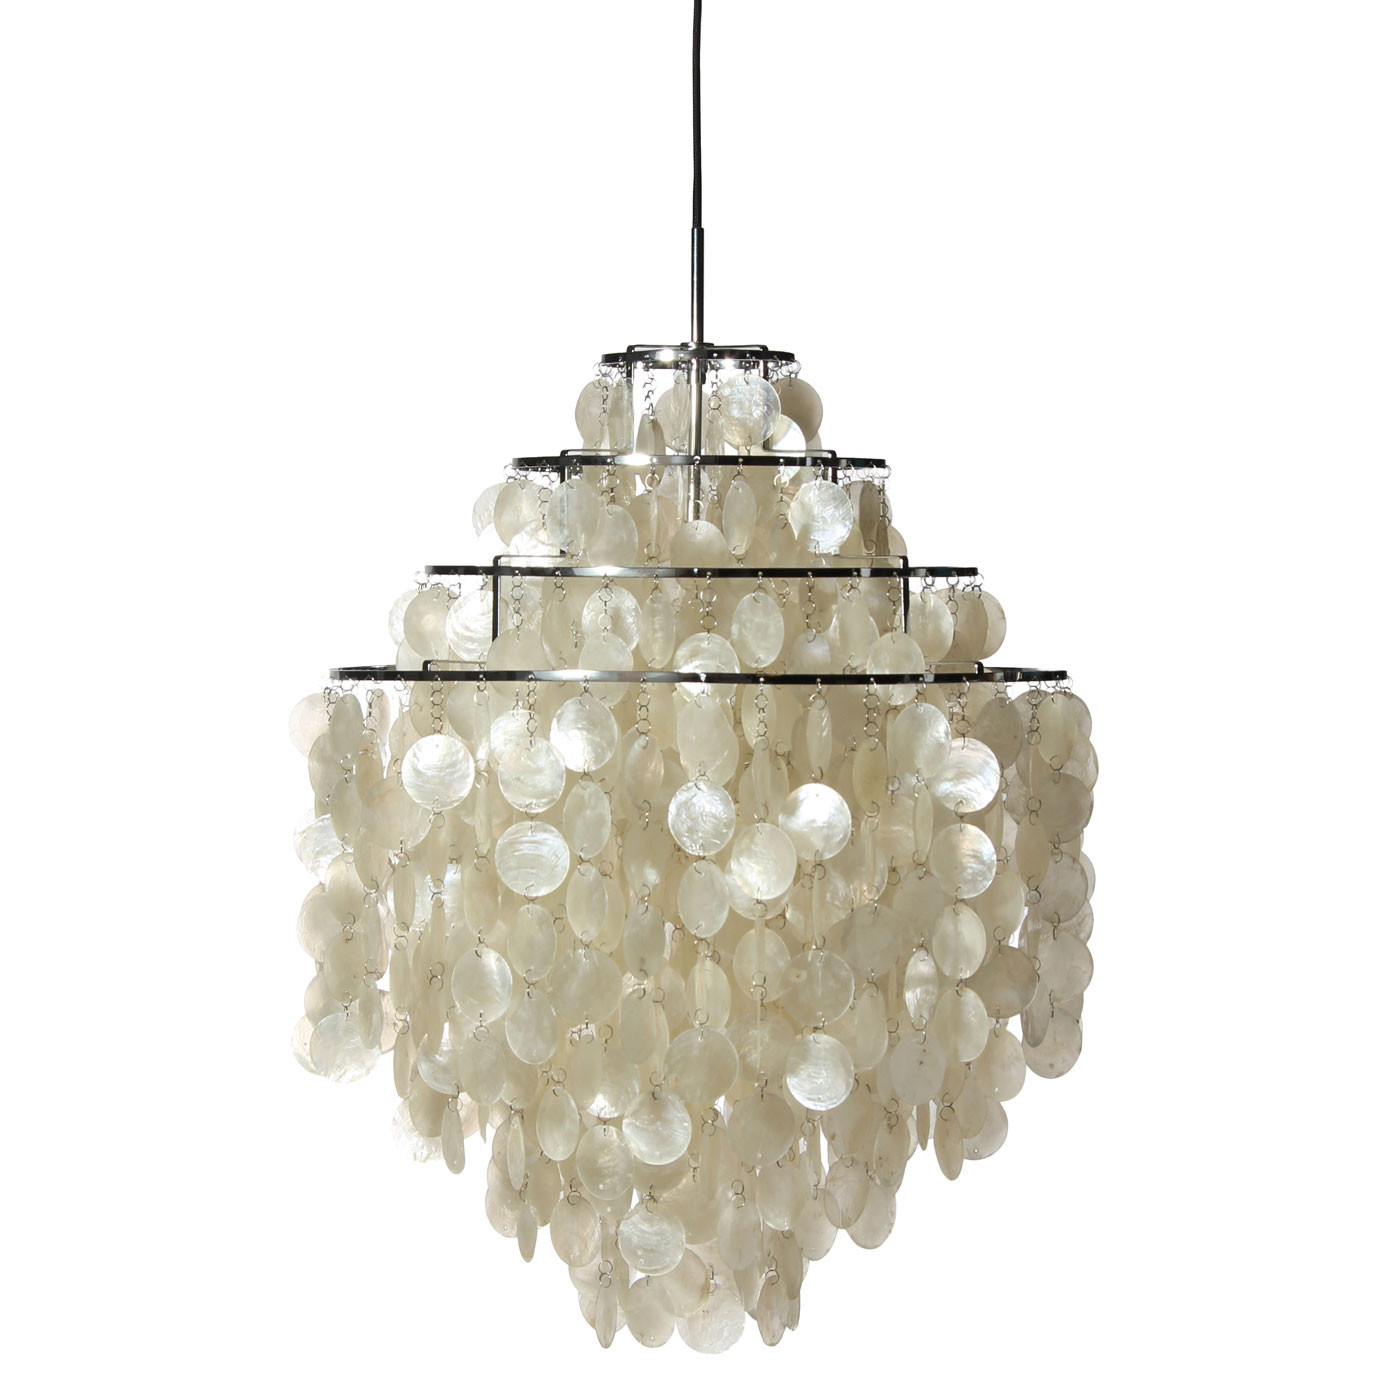 Verpan Fun 0DM Pendant Light